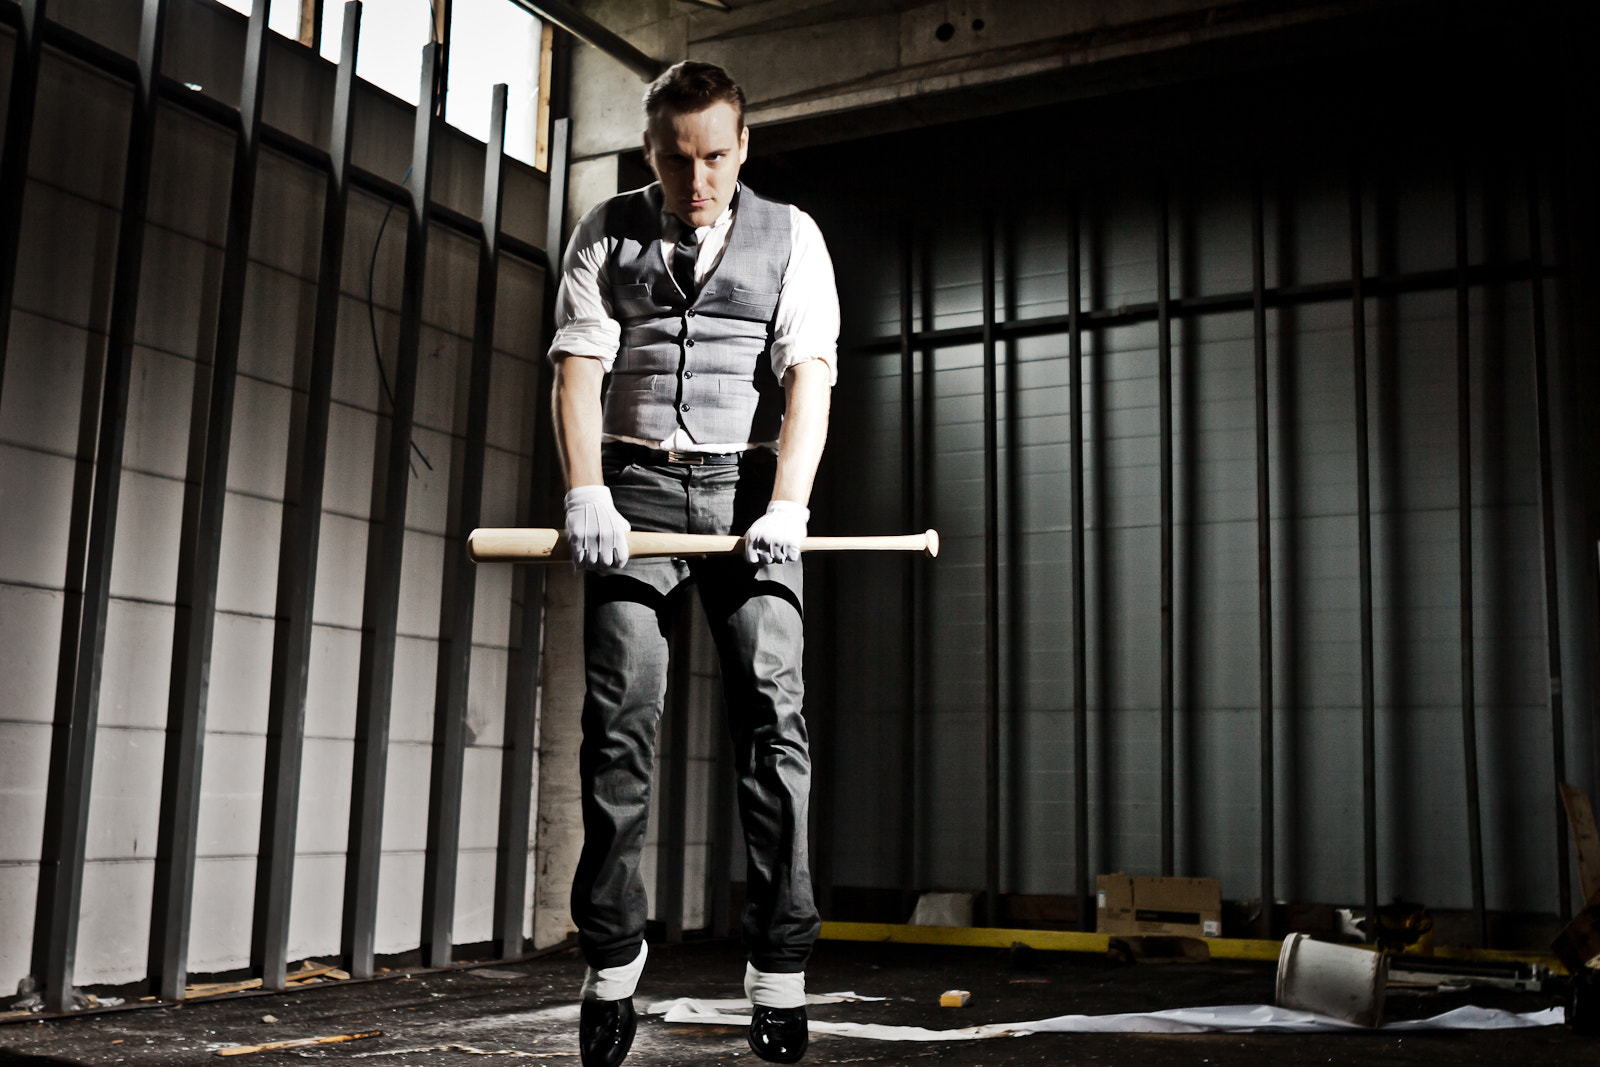 Photograph Man With Baseball Bat by JP Manninen on 500px